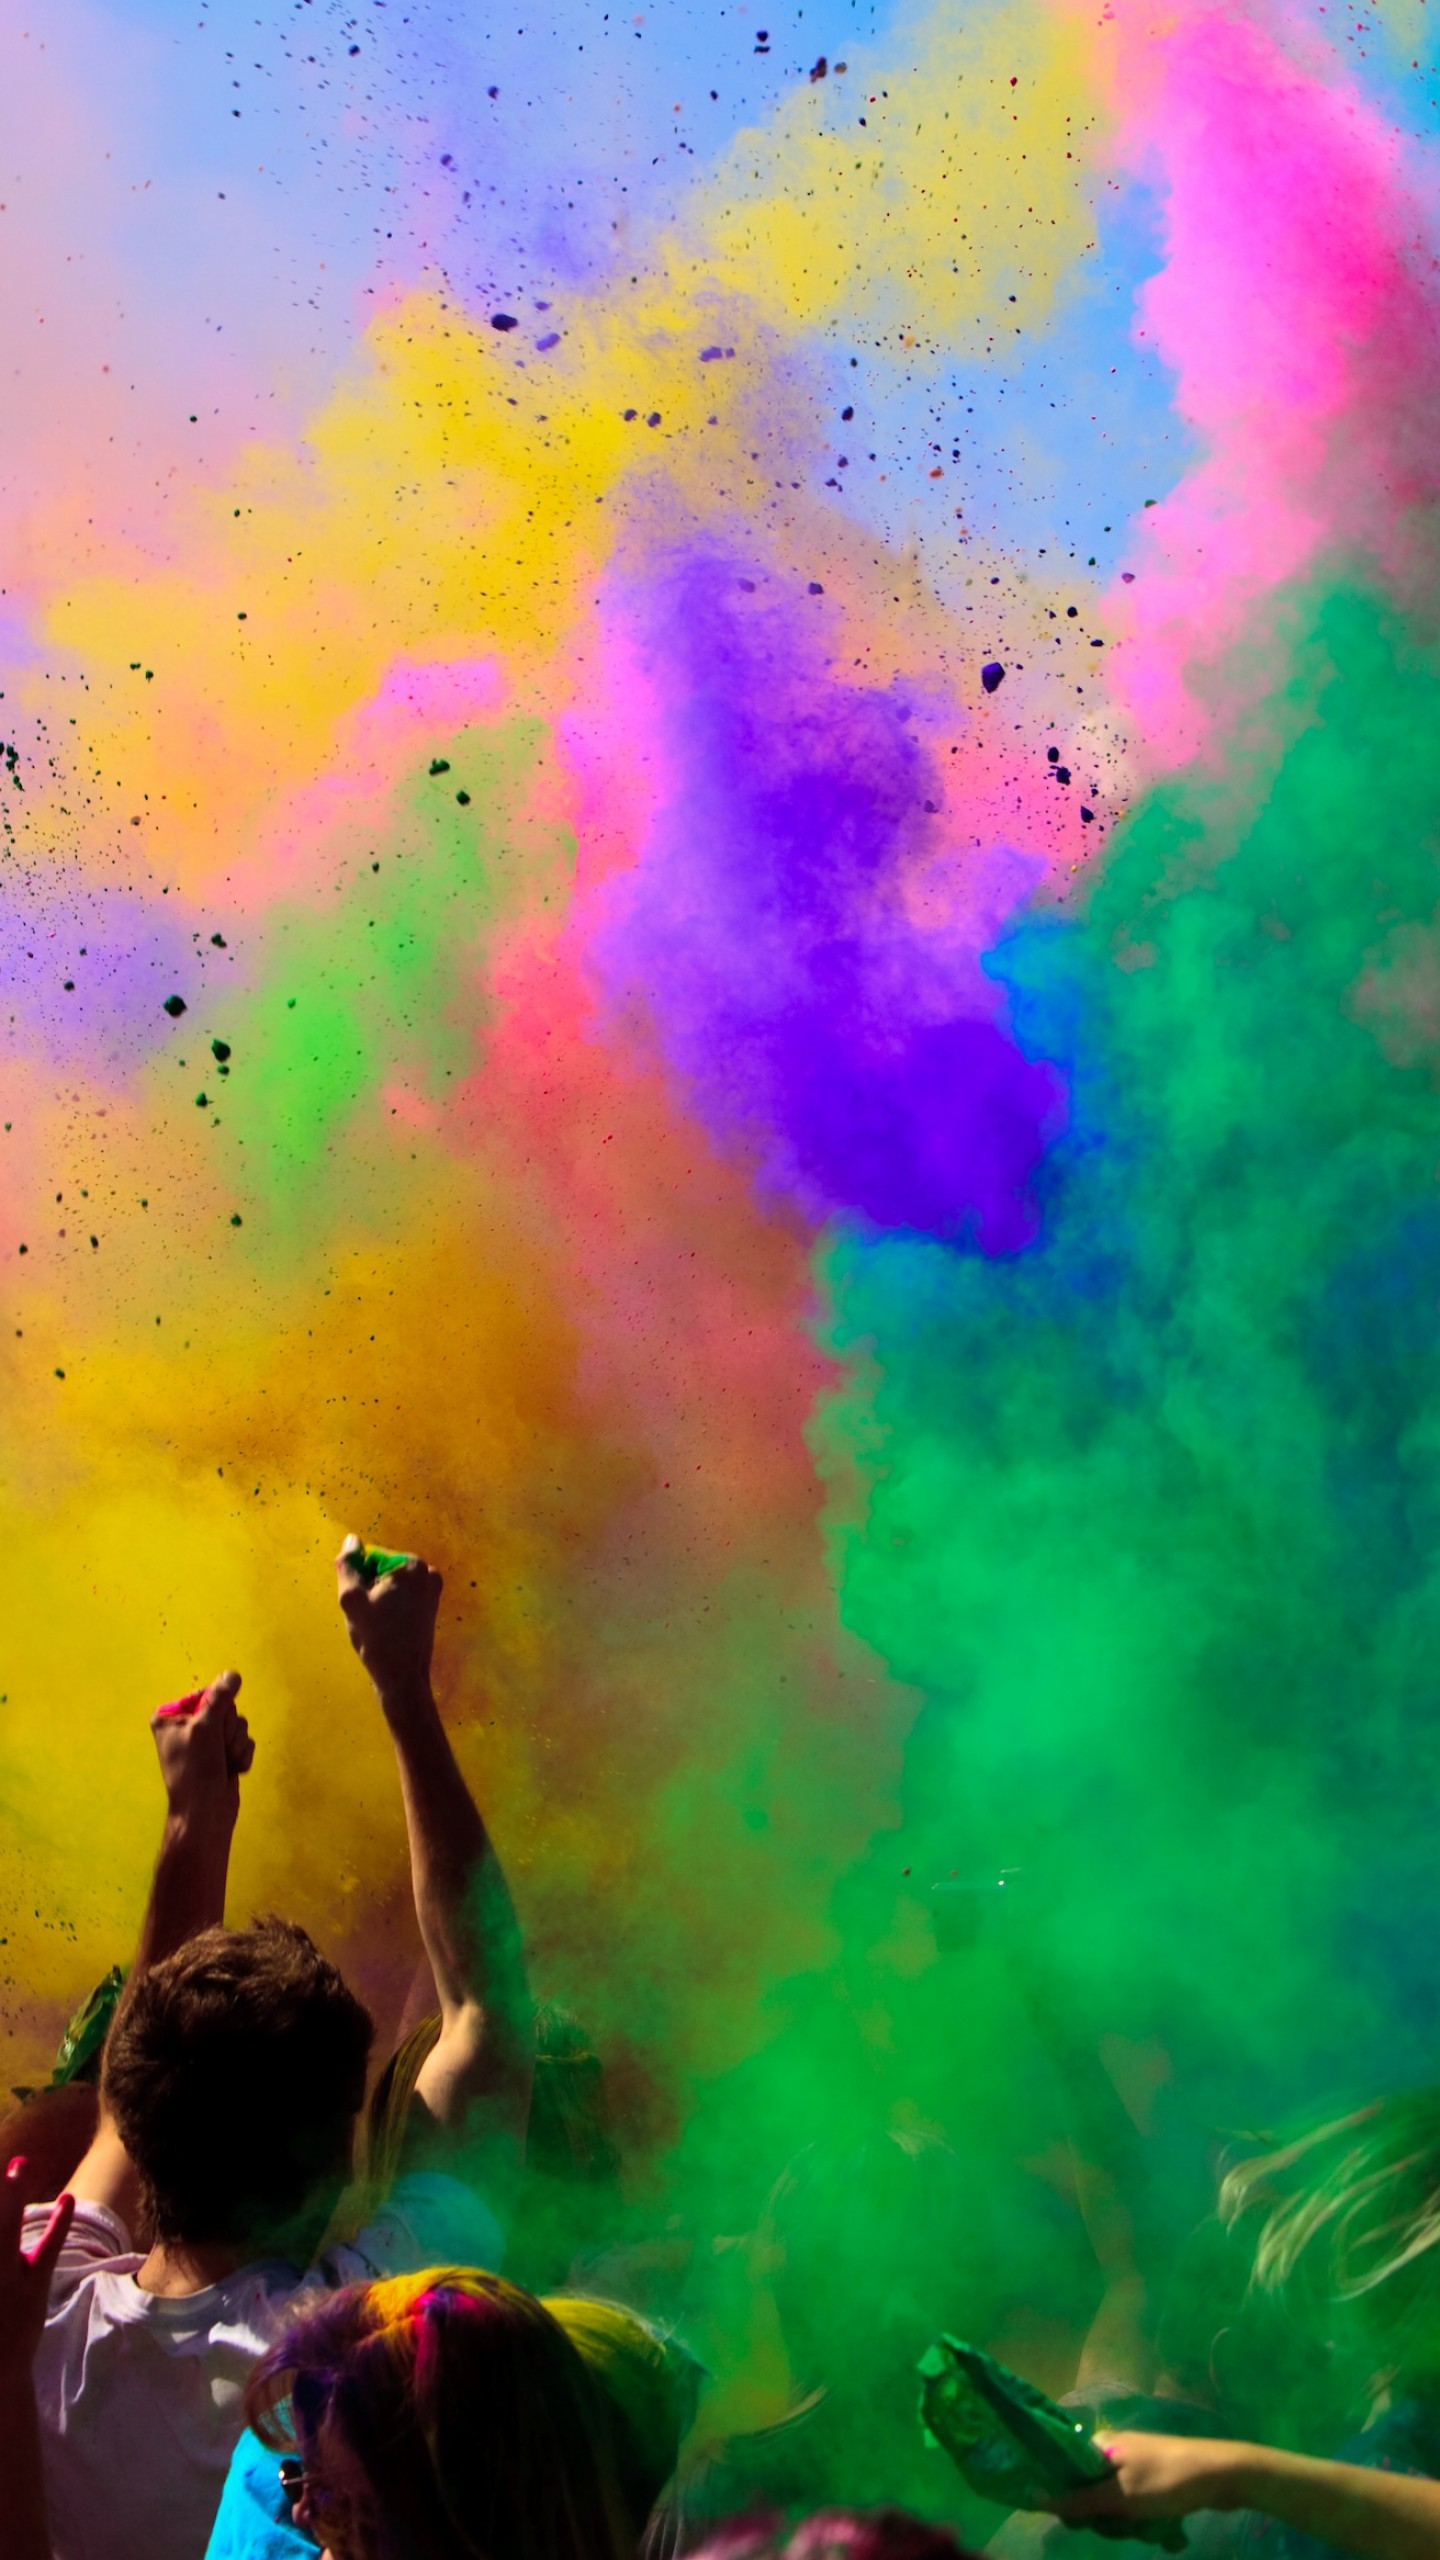 Cupcakes Cute Wallpaper Wallpaper Holi Festival Of Colours Indian Holiday Spring